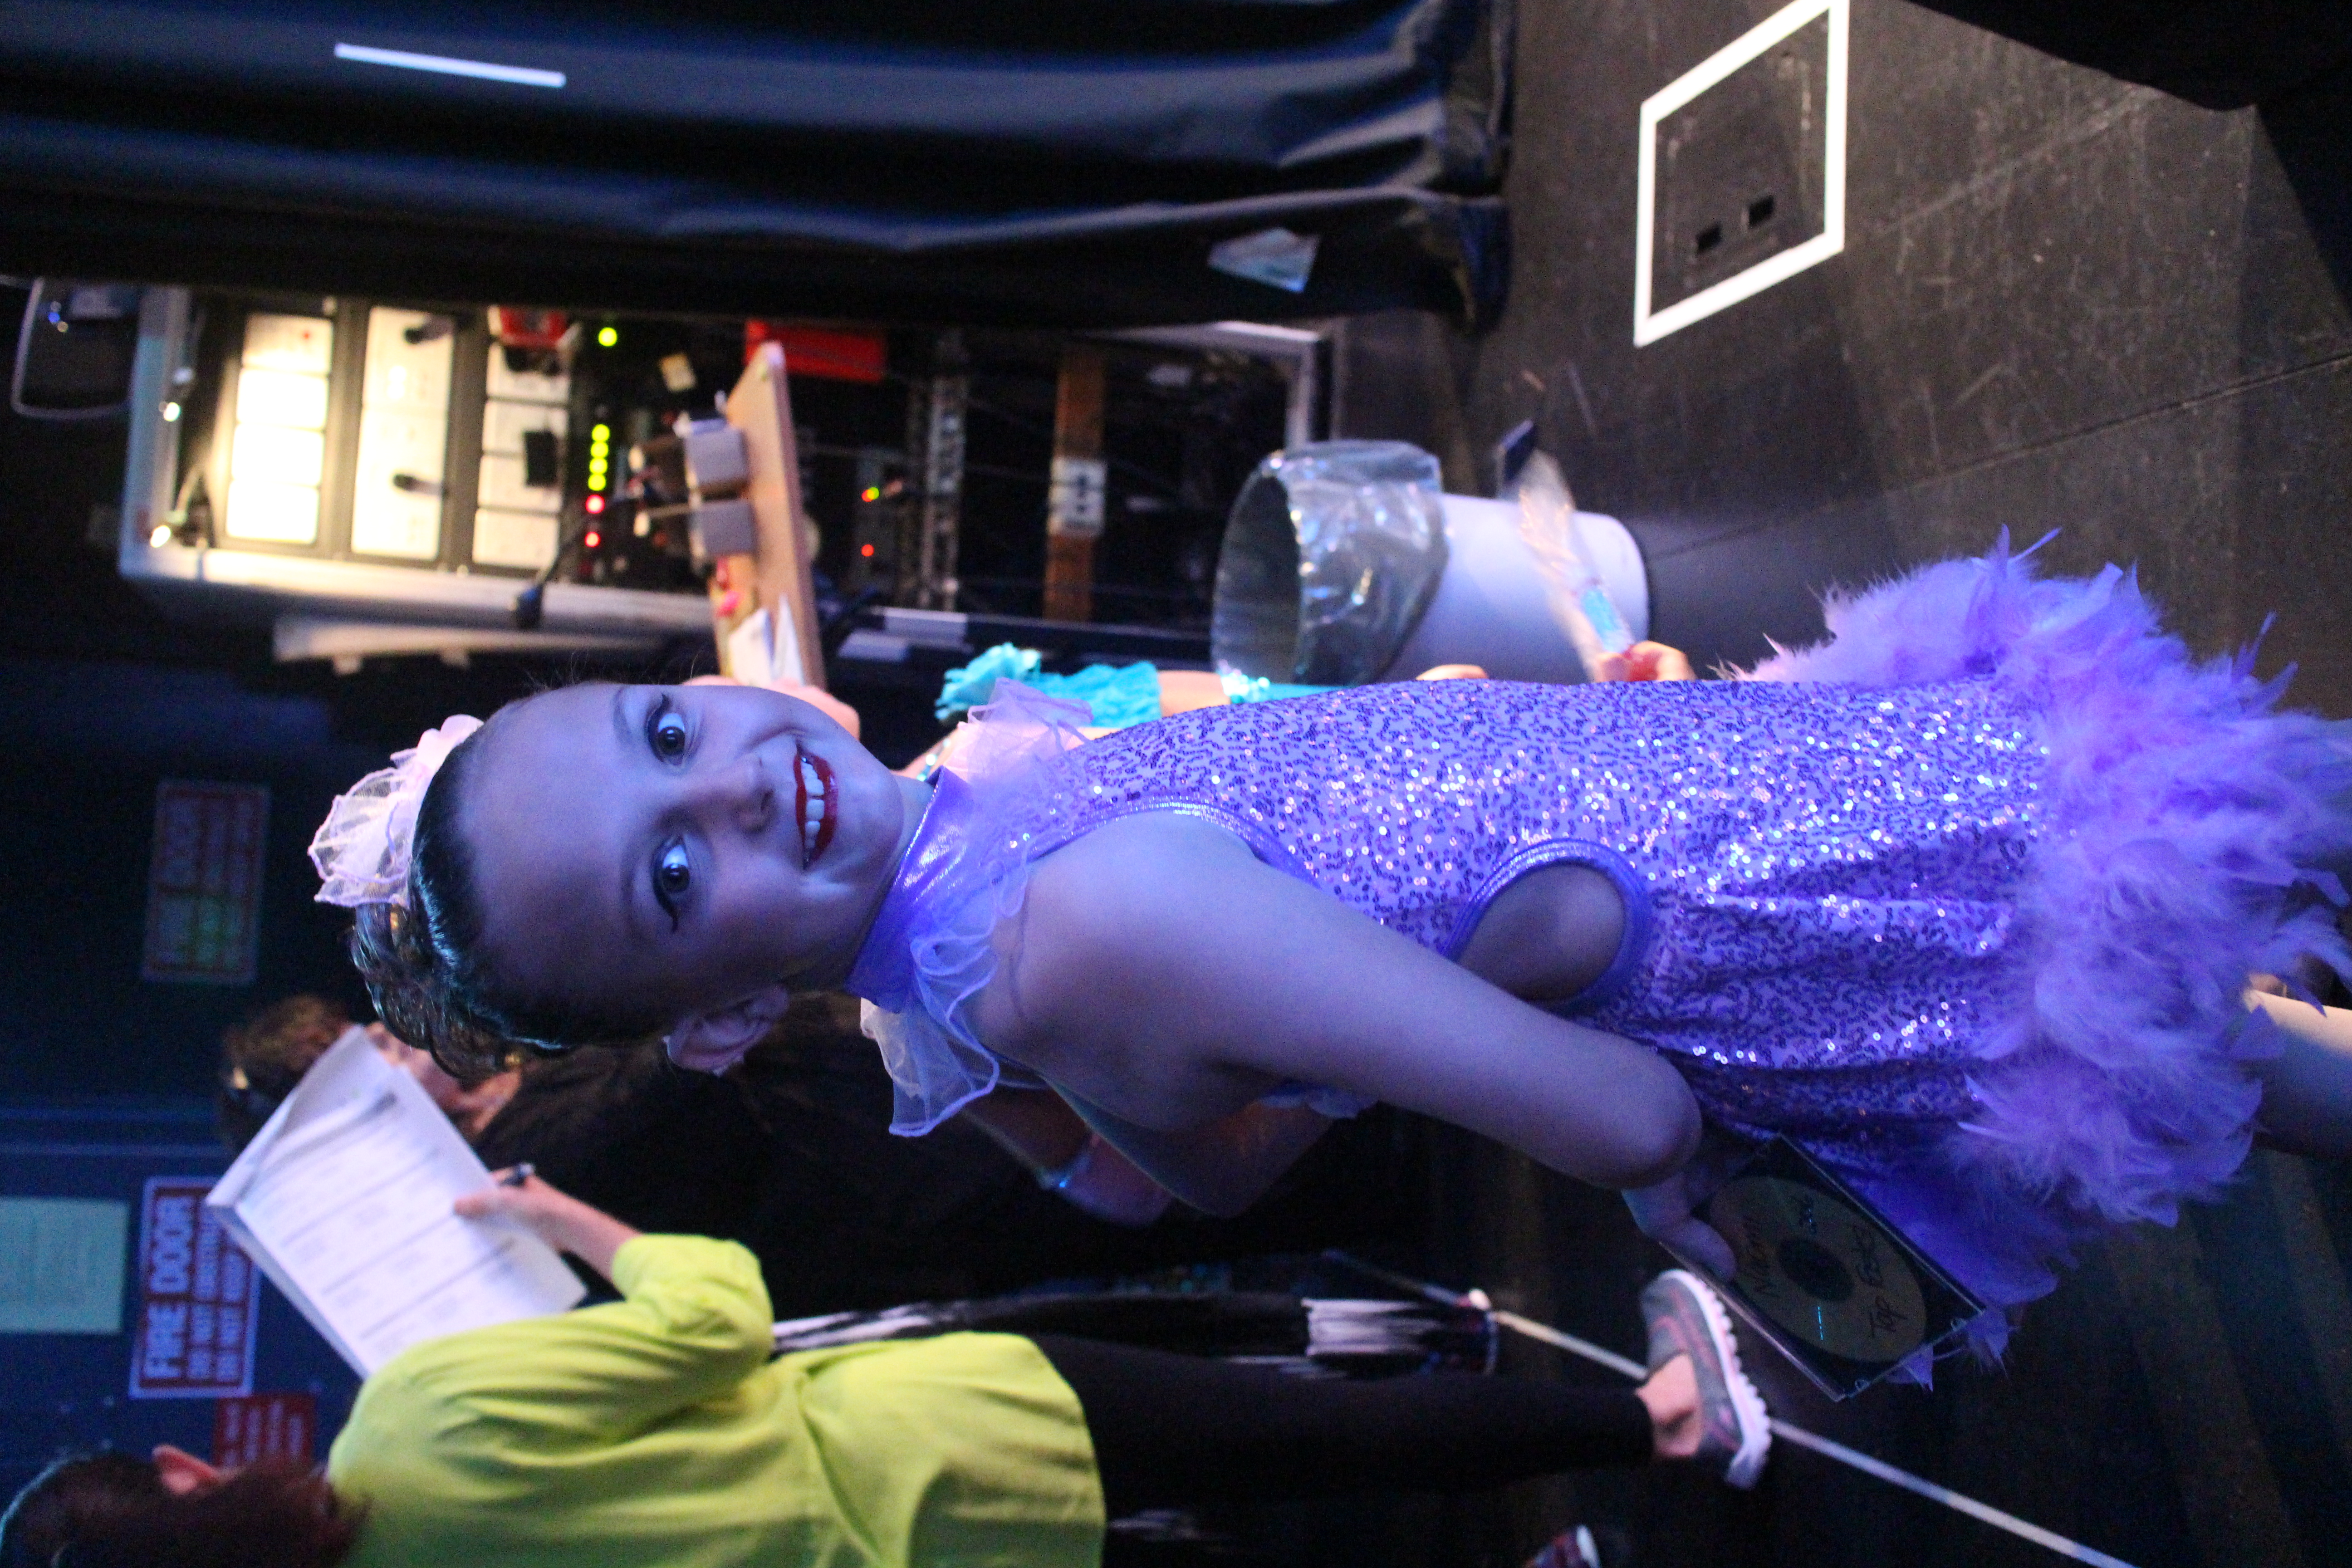 Naomi waiting in the wings!